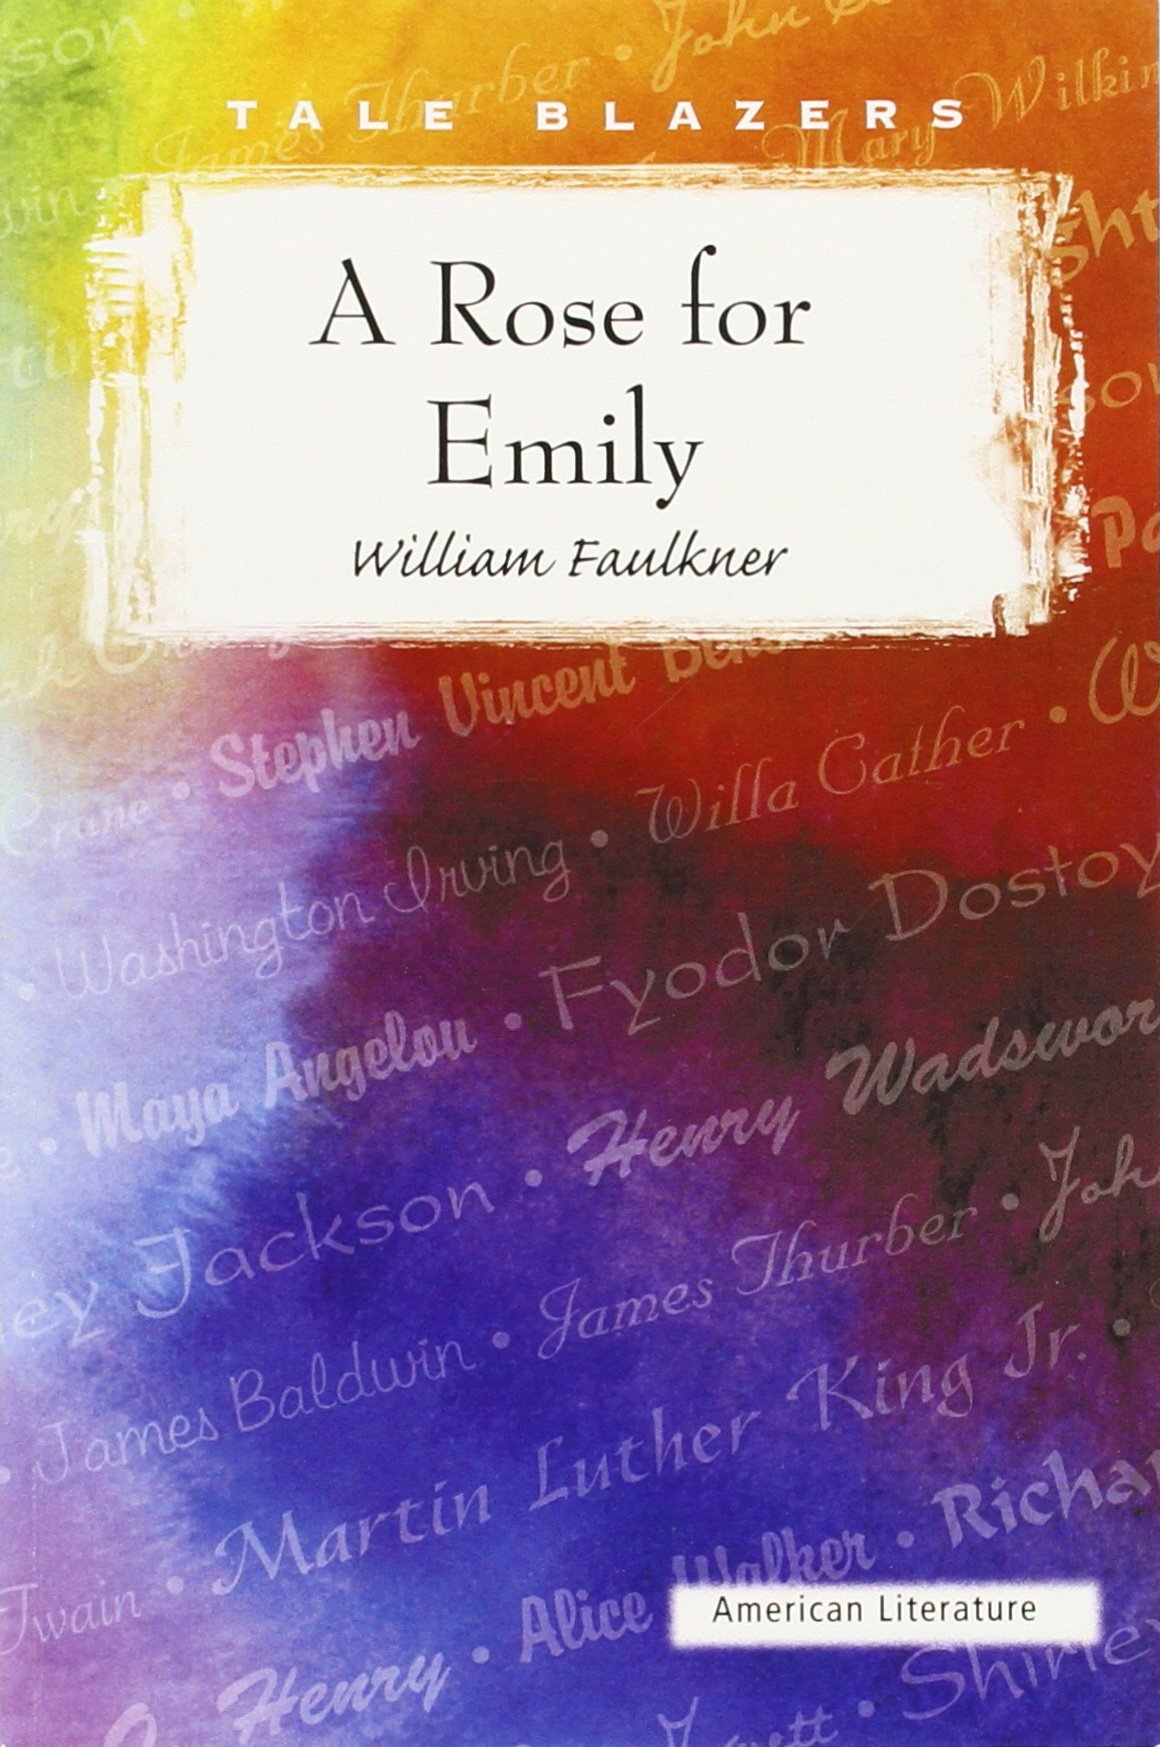 a rose for emily tale blazers american literature co uk a rose for emily tale blazers american literature co uk william faulkner 9781563127885 books